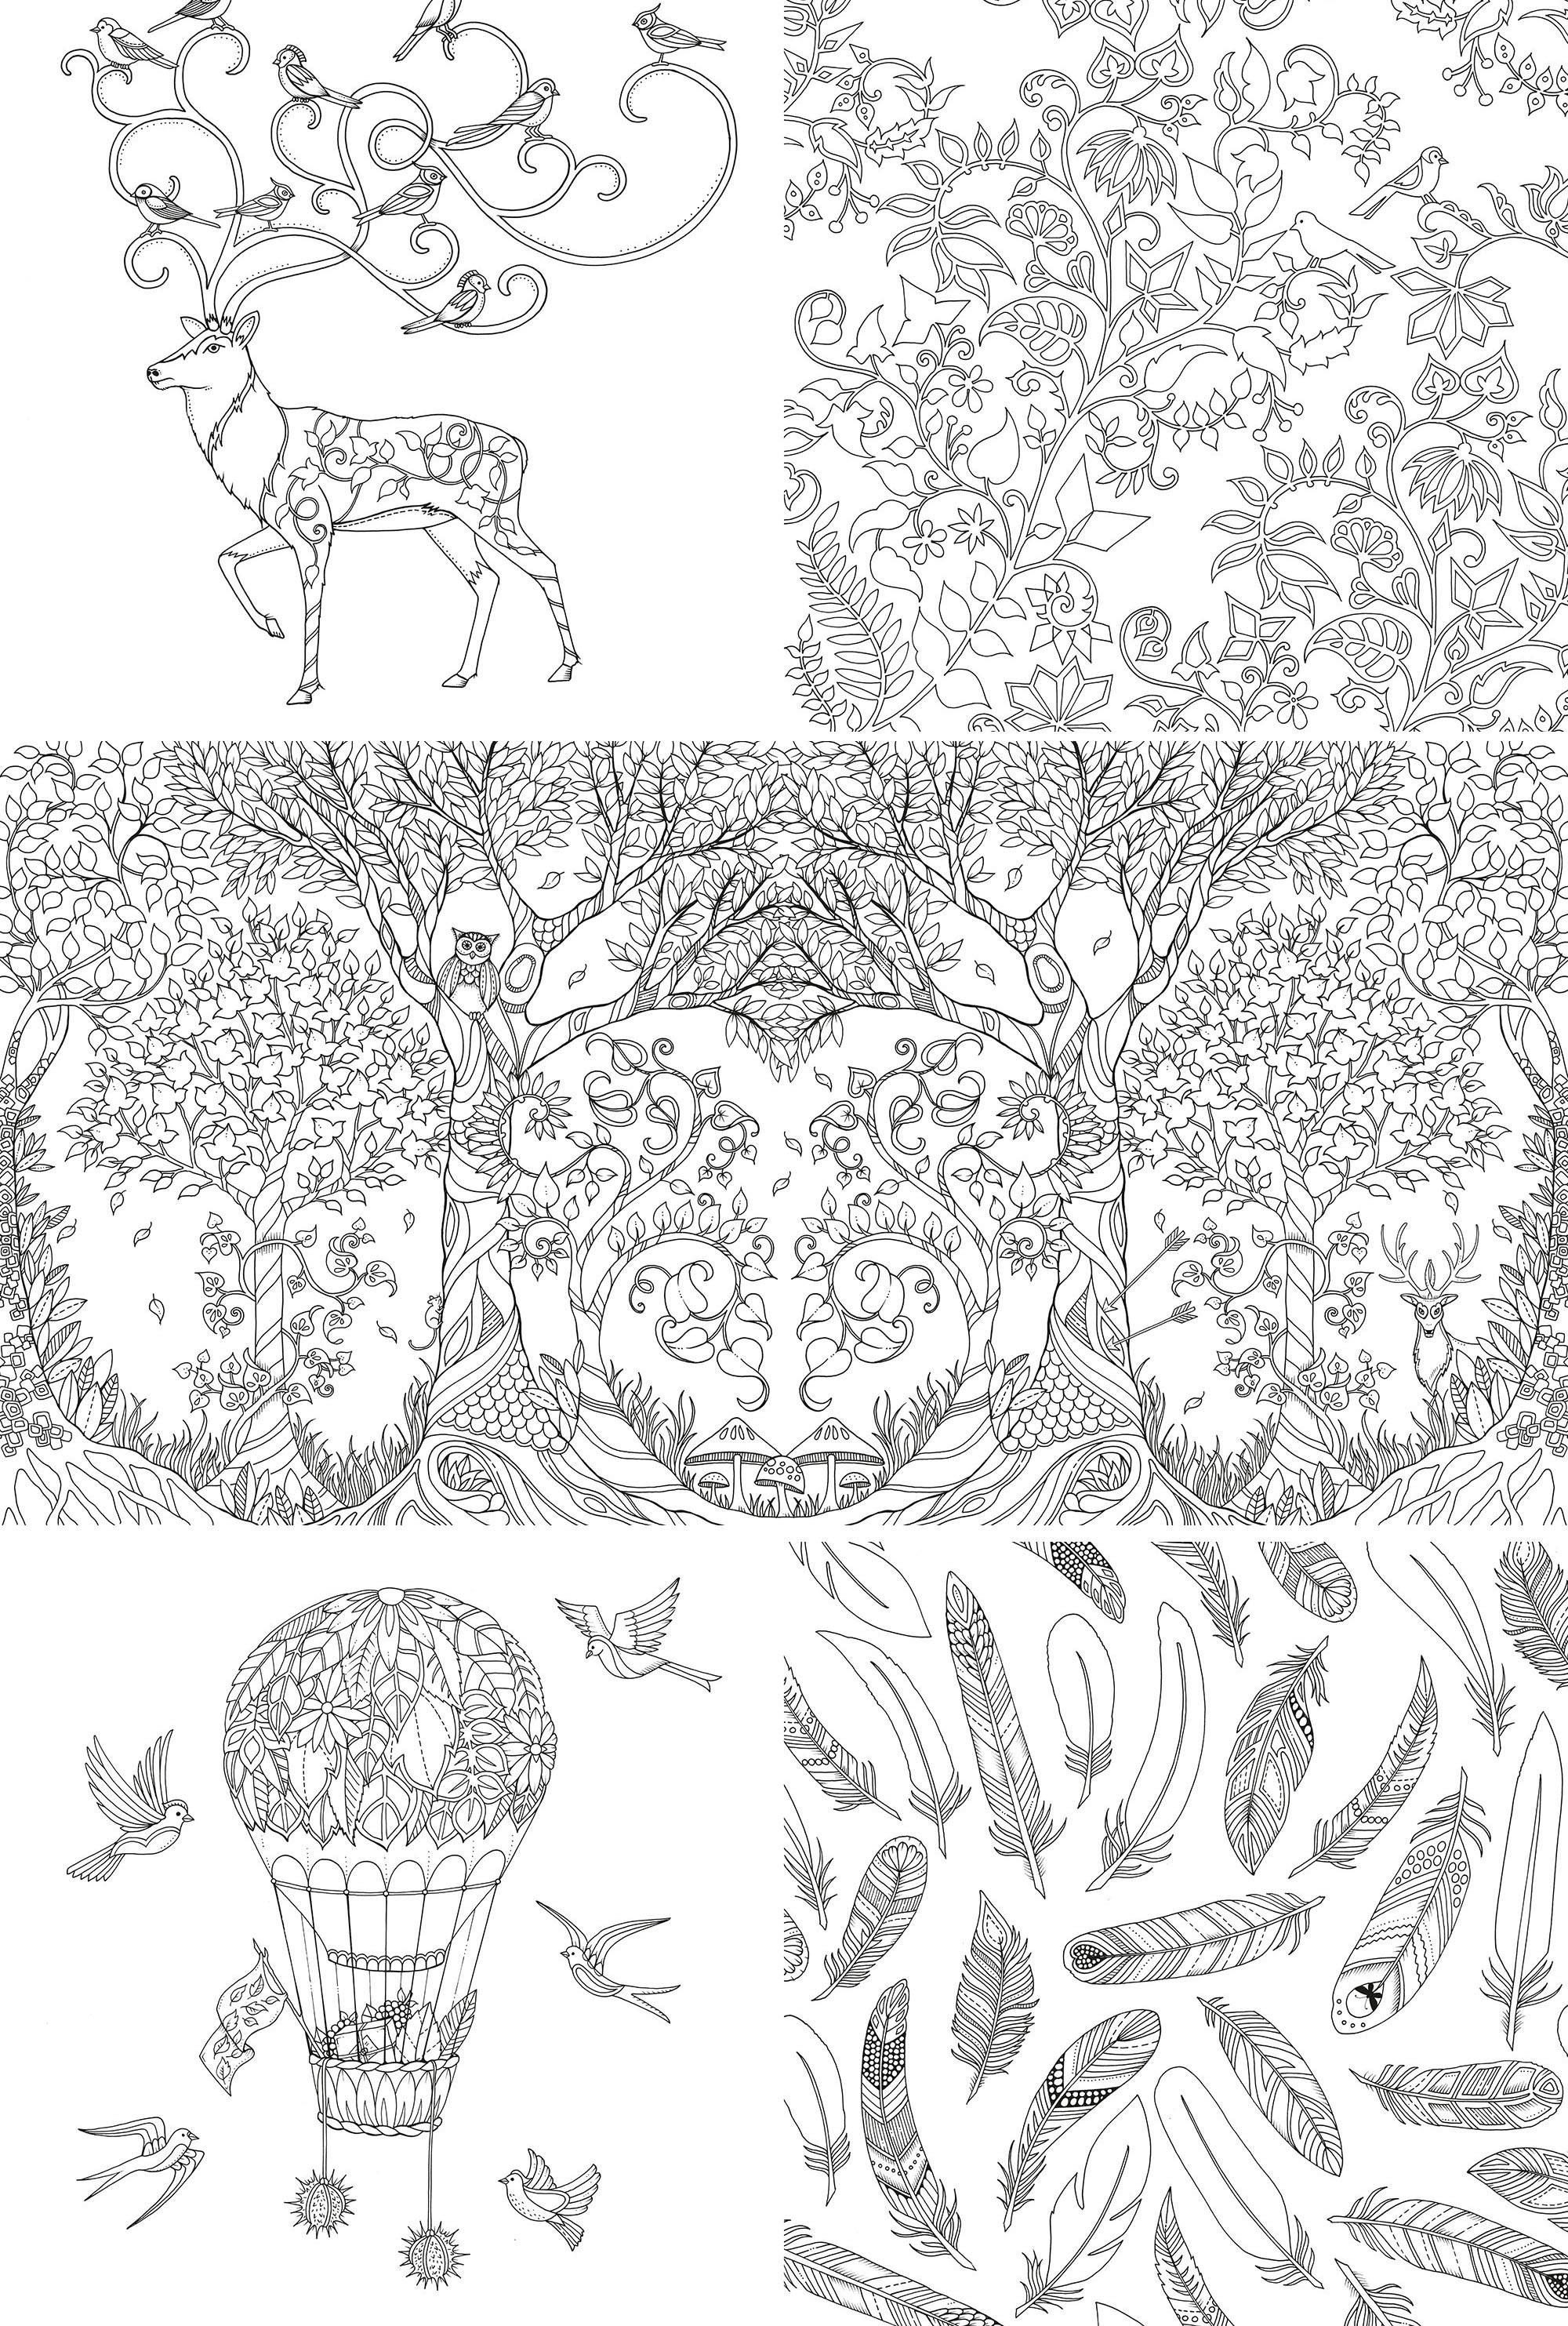 Enchanted forest coloring book website - Enchanted Forest Coloring Book Enchanted Forest Coloring Book